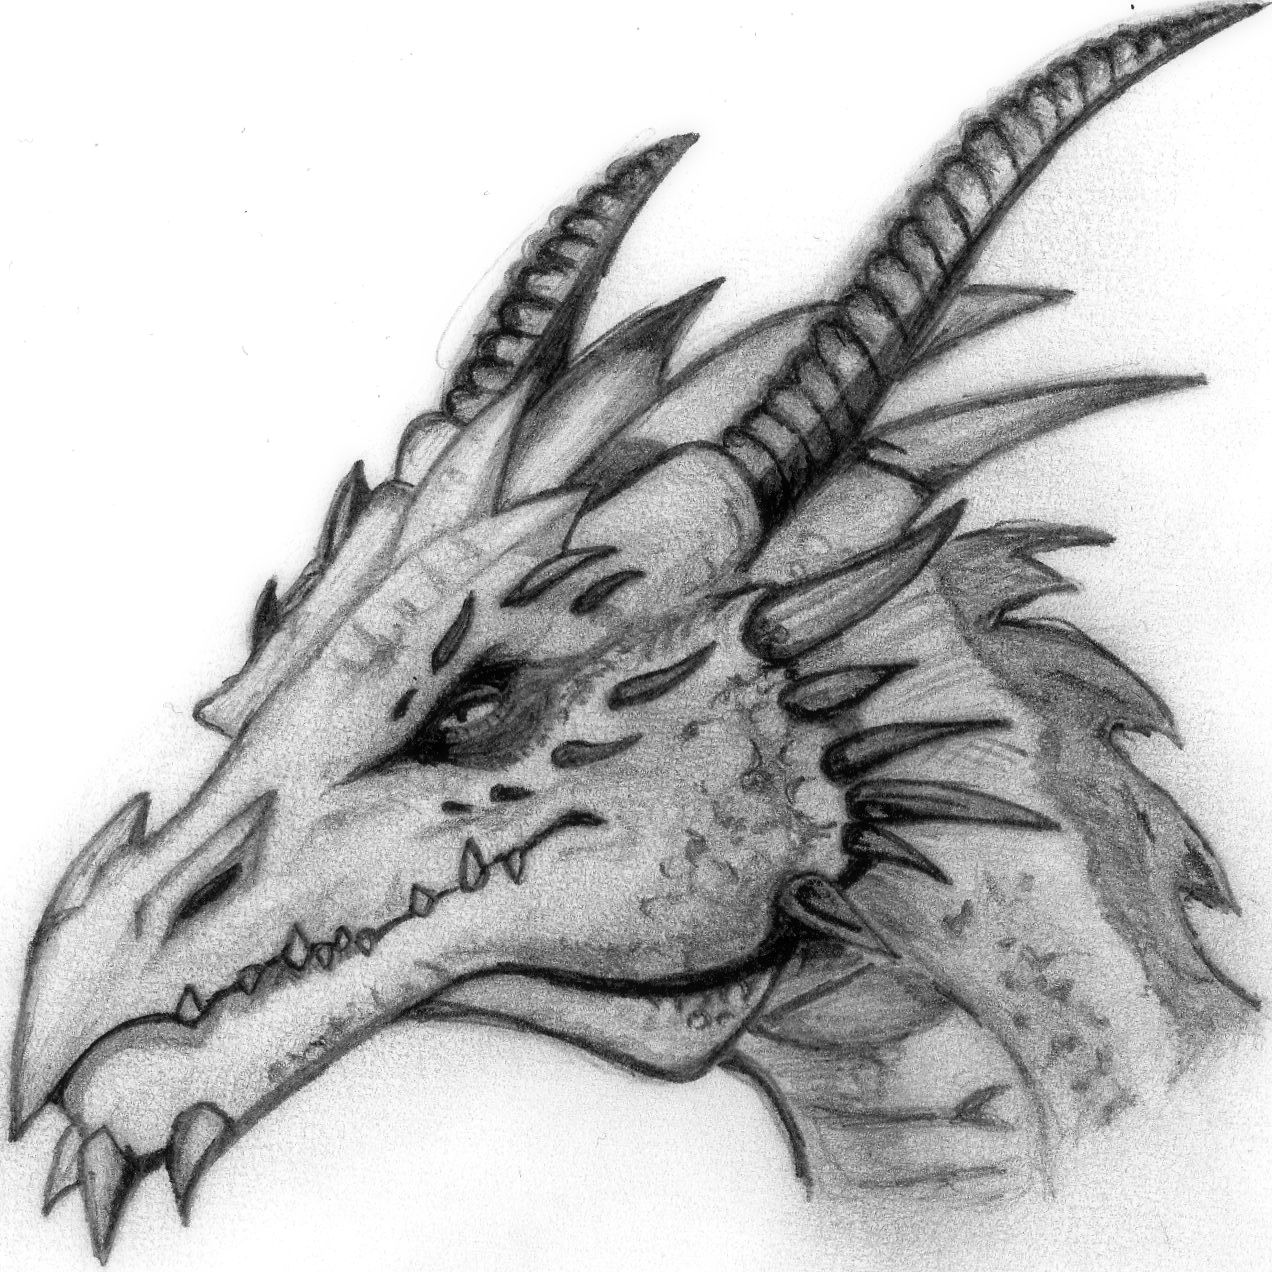 Pics for cool dragon head drawings in pencil